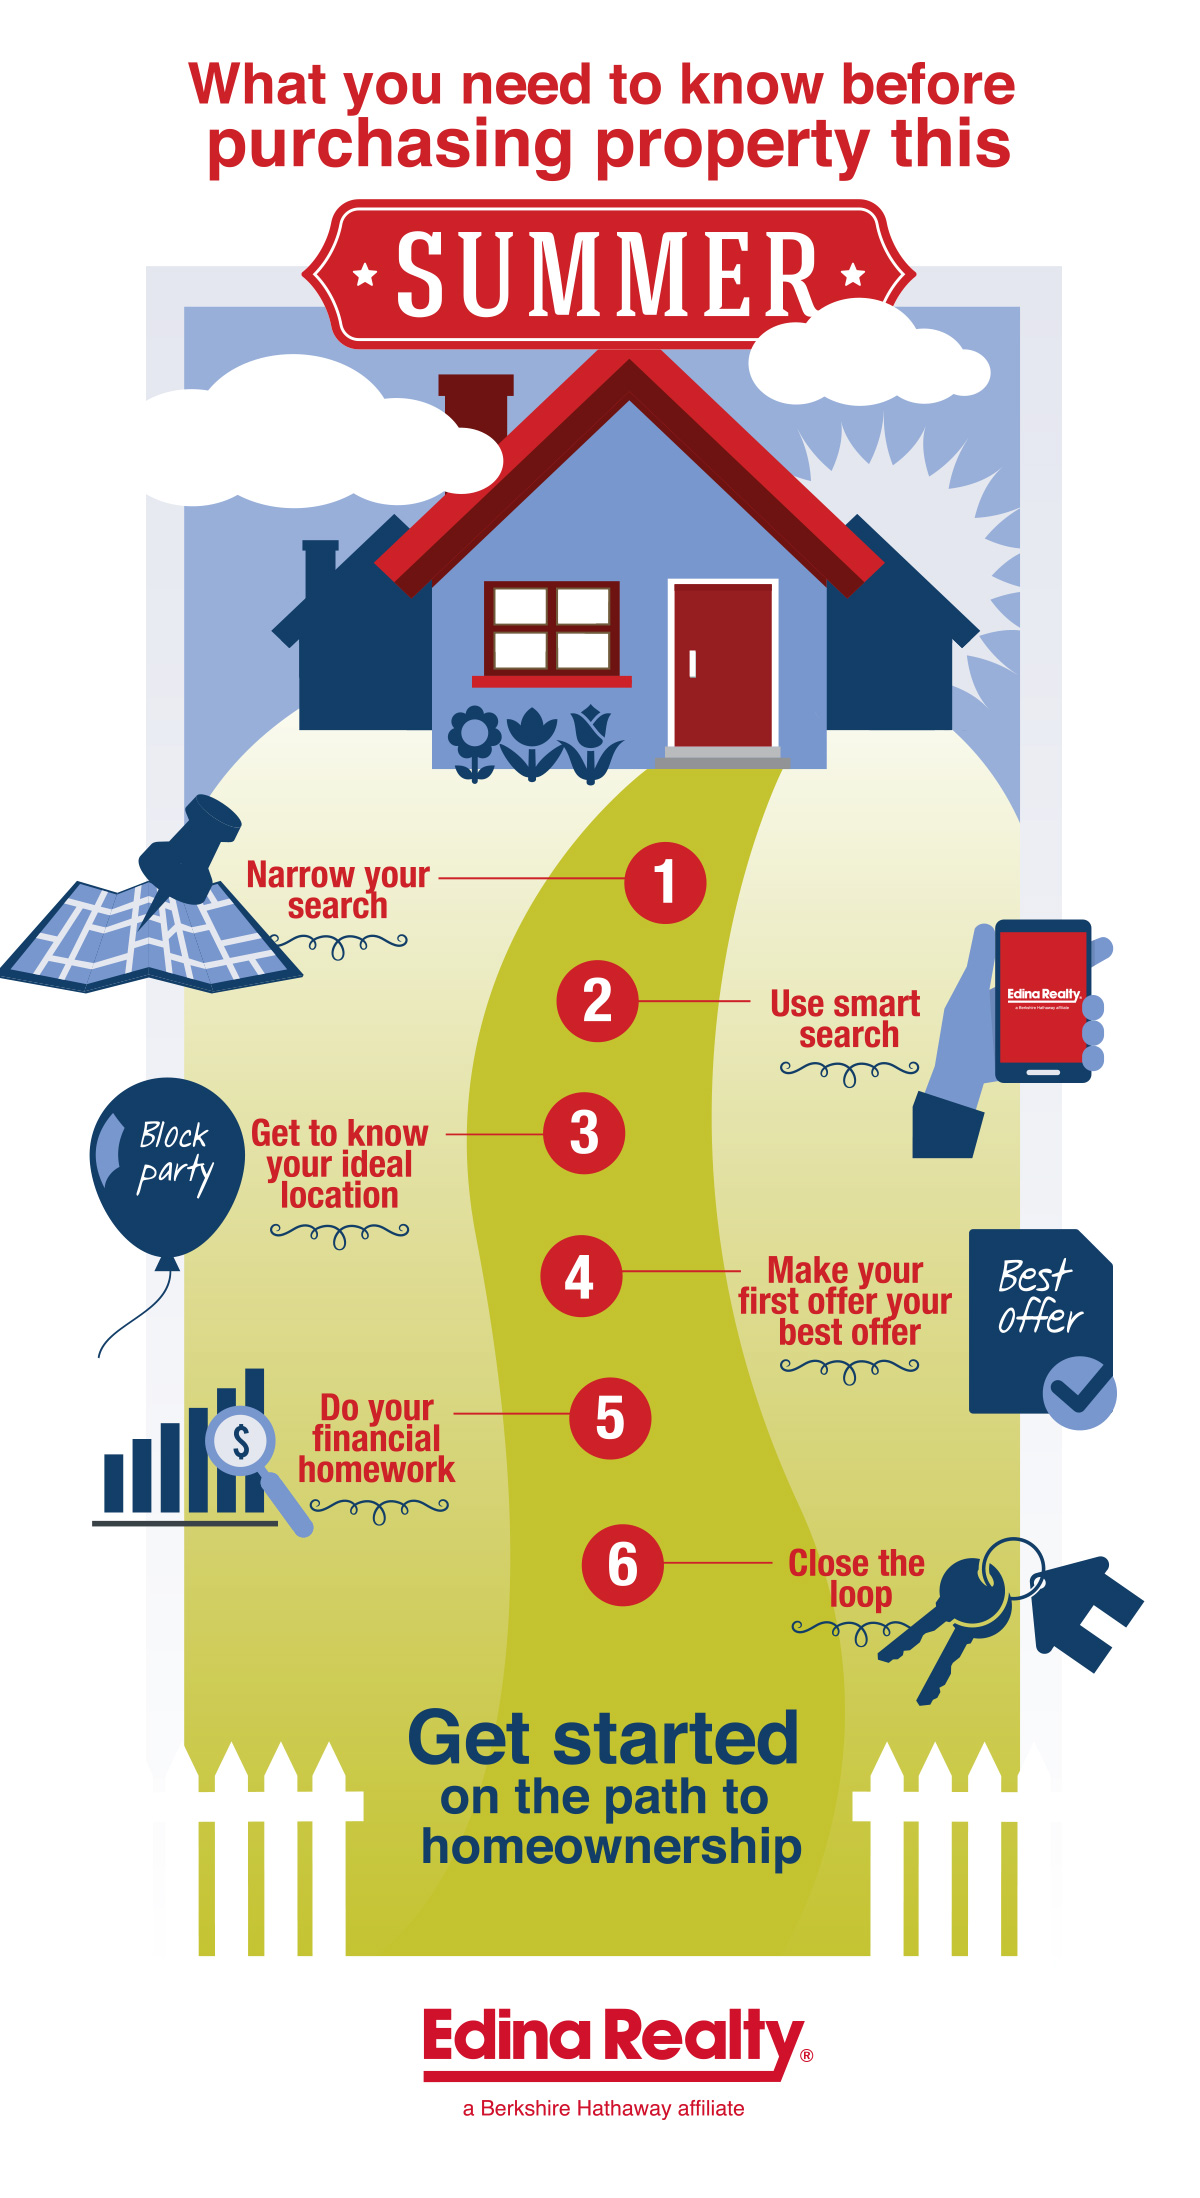 what you need to know before purchasing property this summer if you re buying a home for the first time here are some essential tips to get prepared and stay ahead of the pack as multiple offers and quick s will